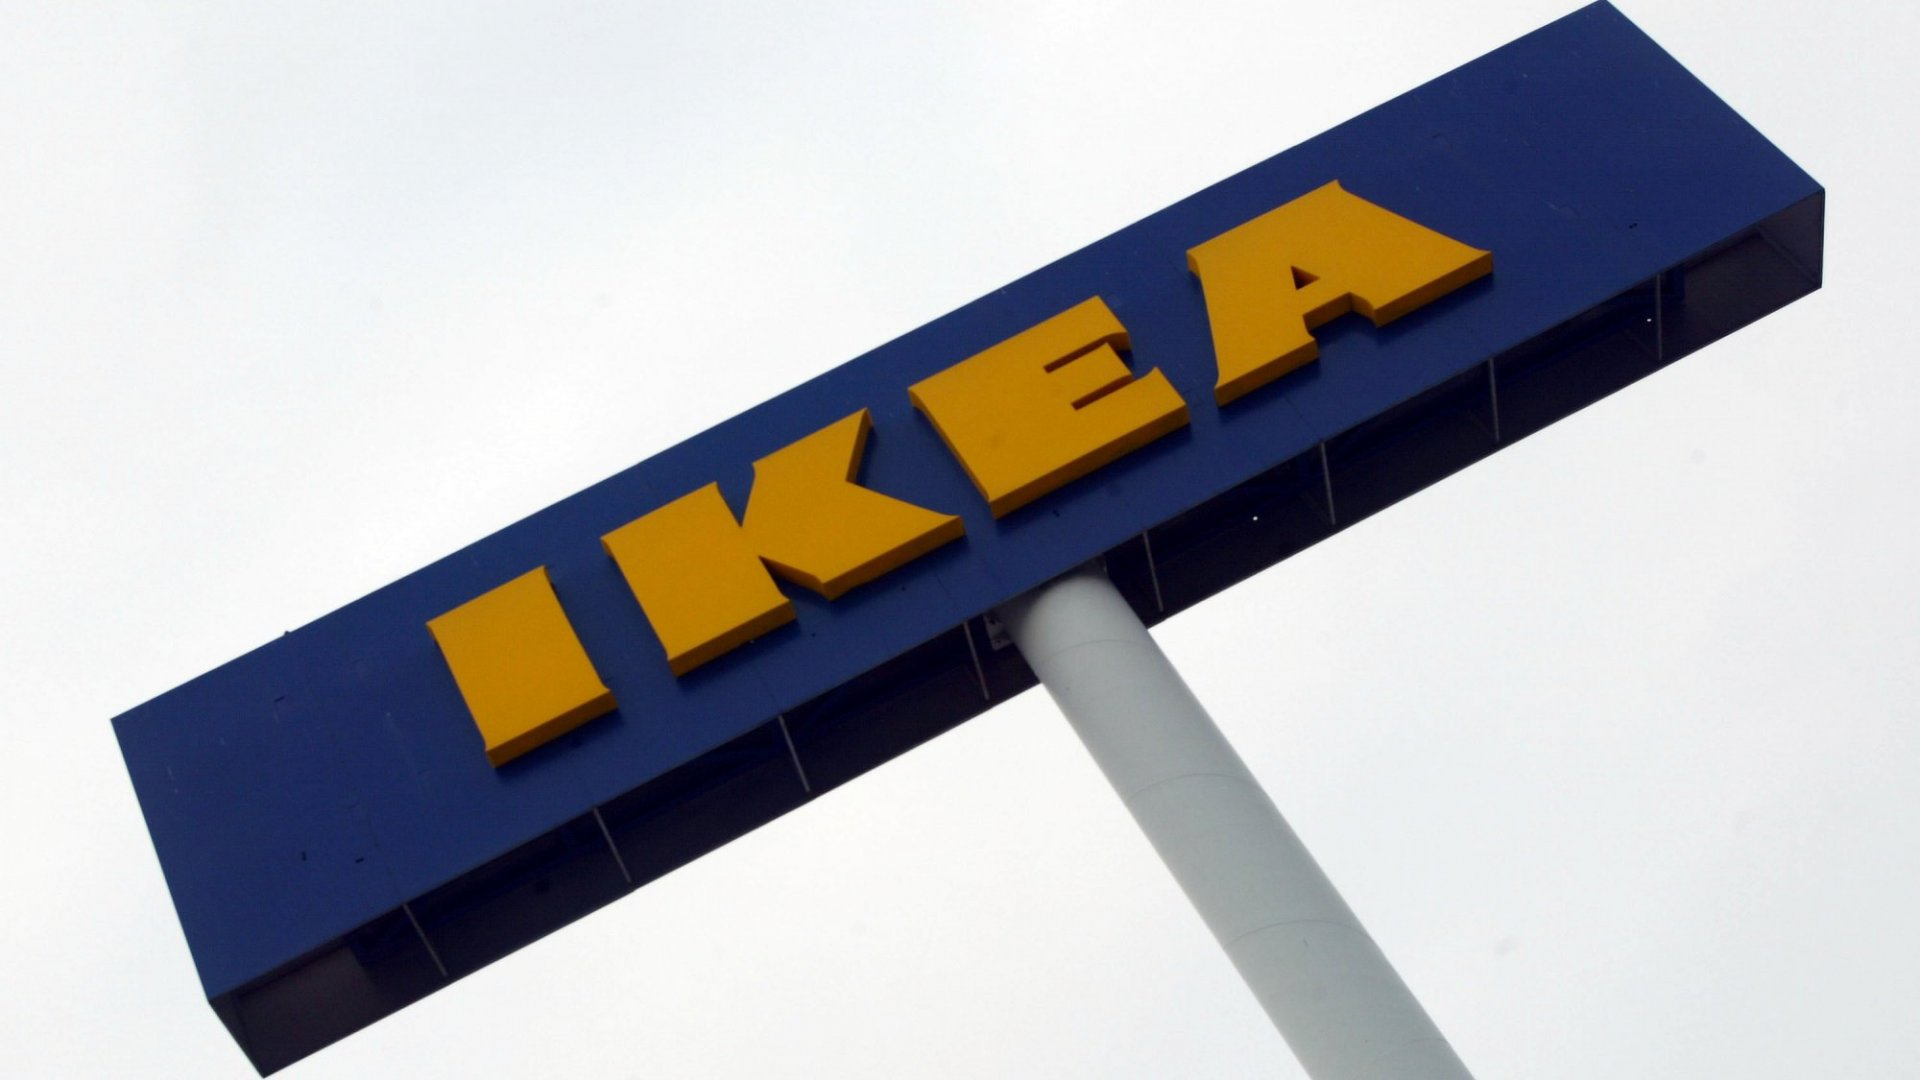 Ikea Rolls Out Yet Another Surprisingly Delightful Product